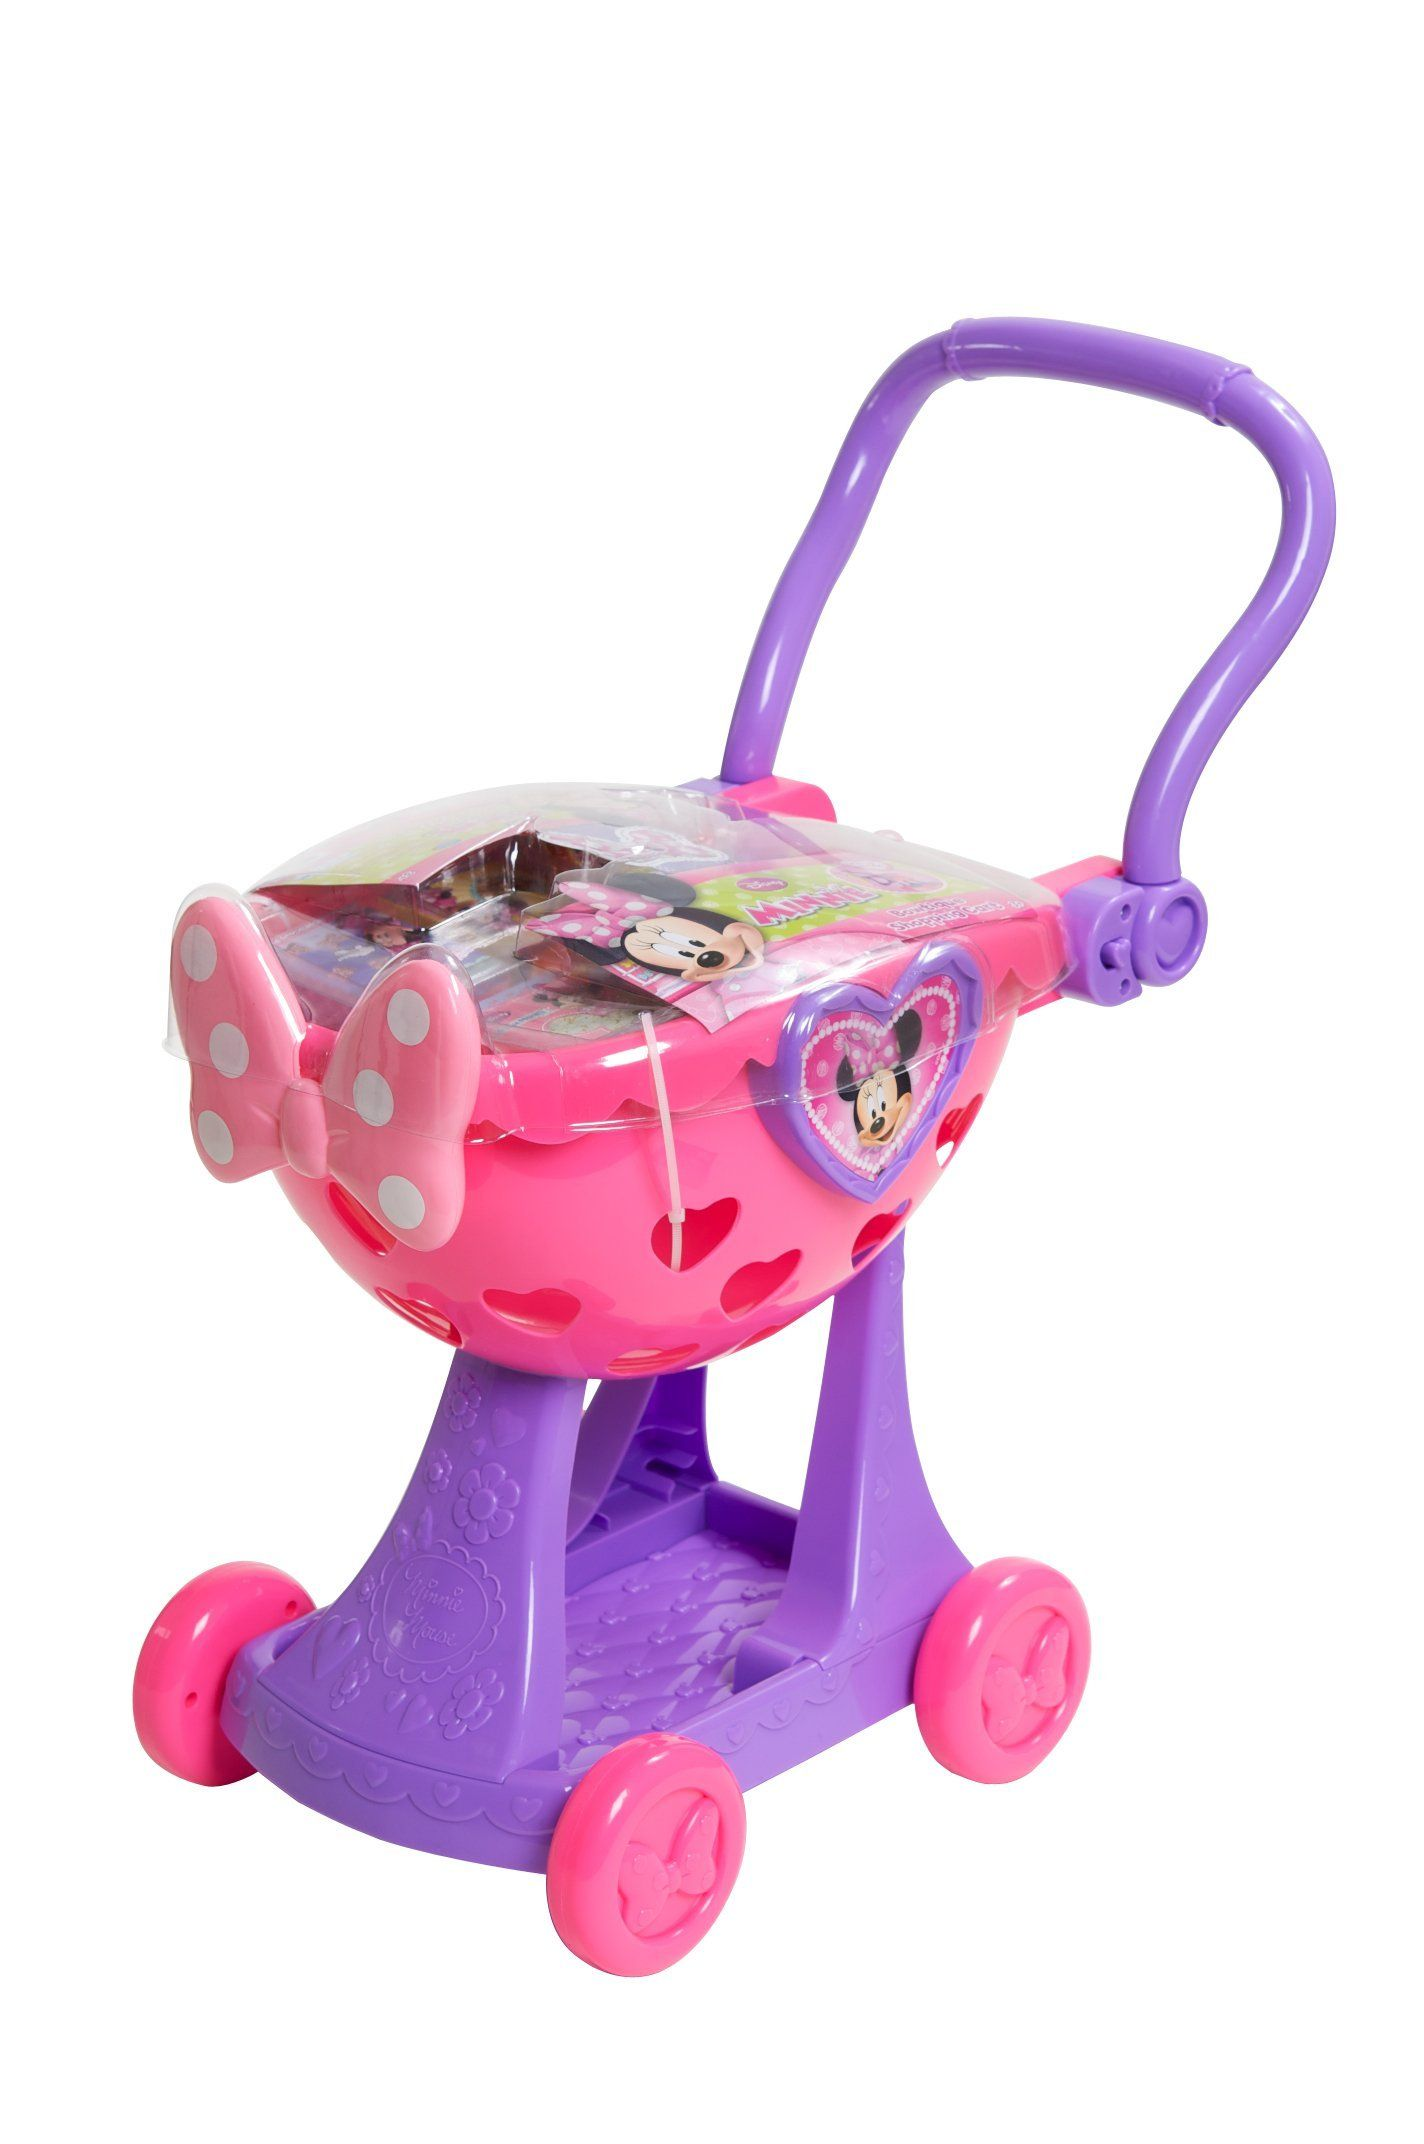 fascinating New Minnie Mouse Toys Part - 14: Minnie Mouse Shopping Cart